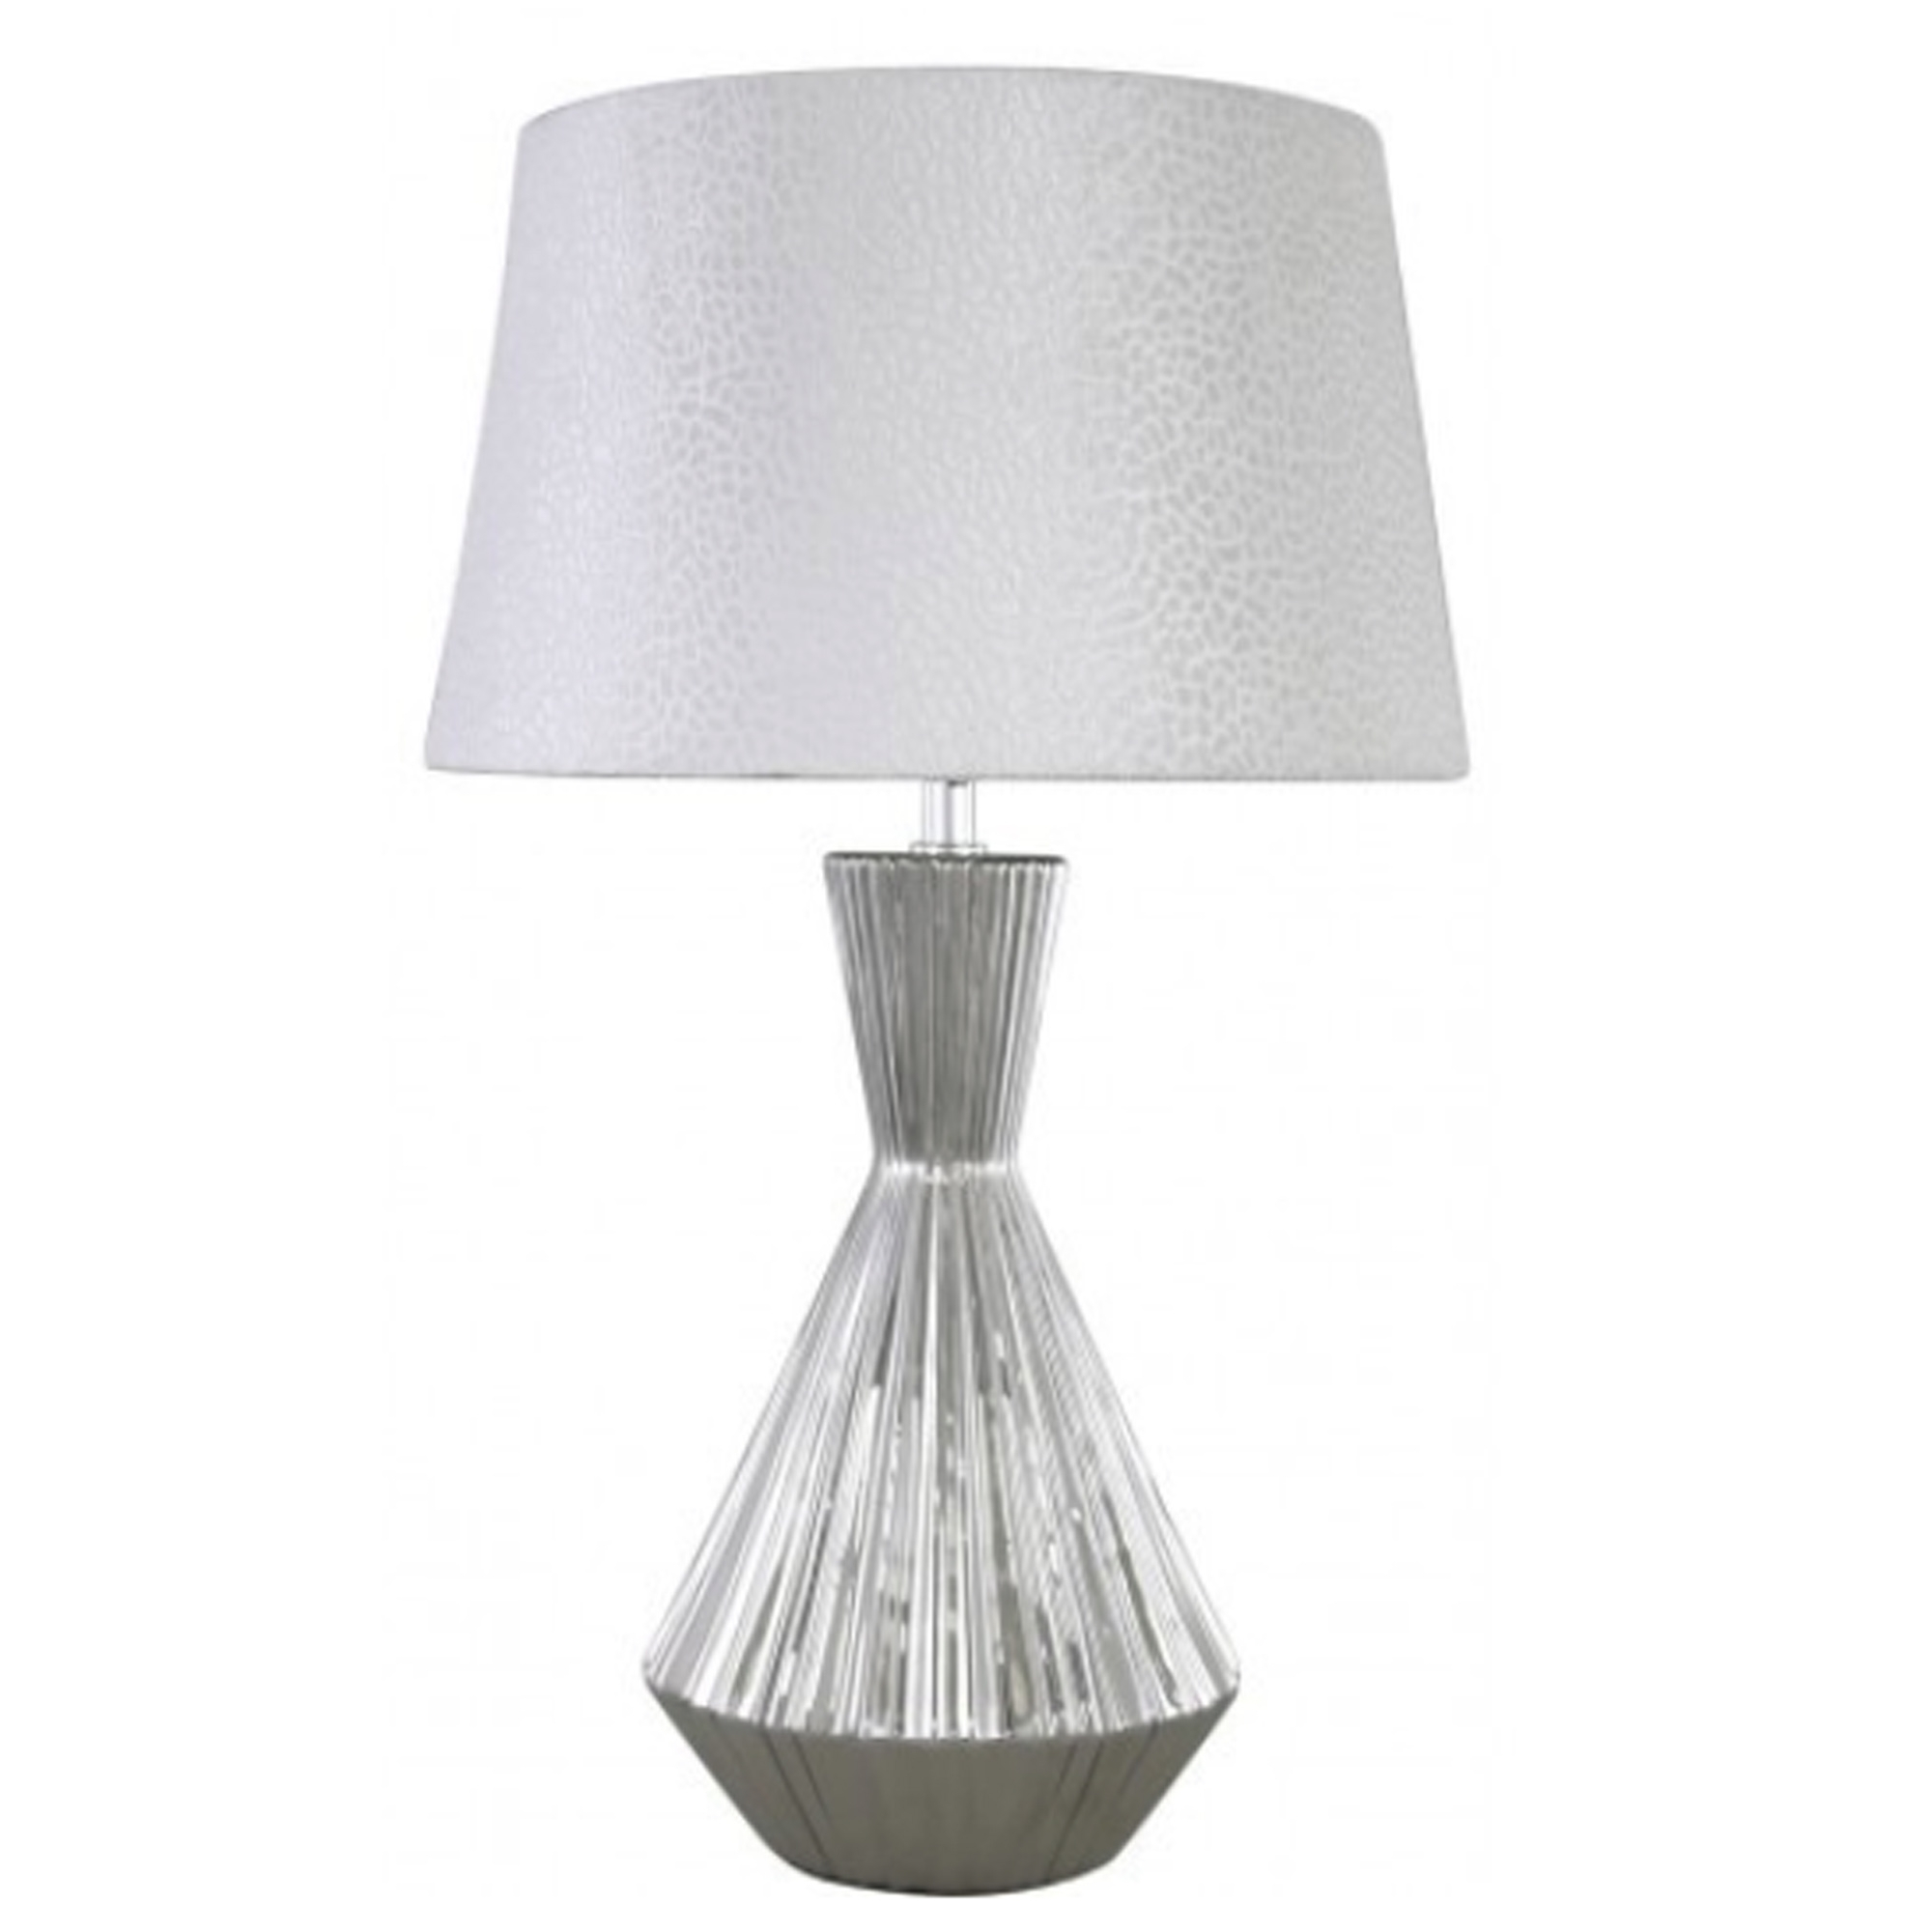 Small Silver Ceramic Modern Table Lamp Table Lamps